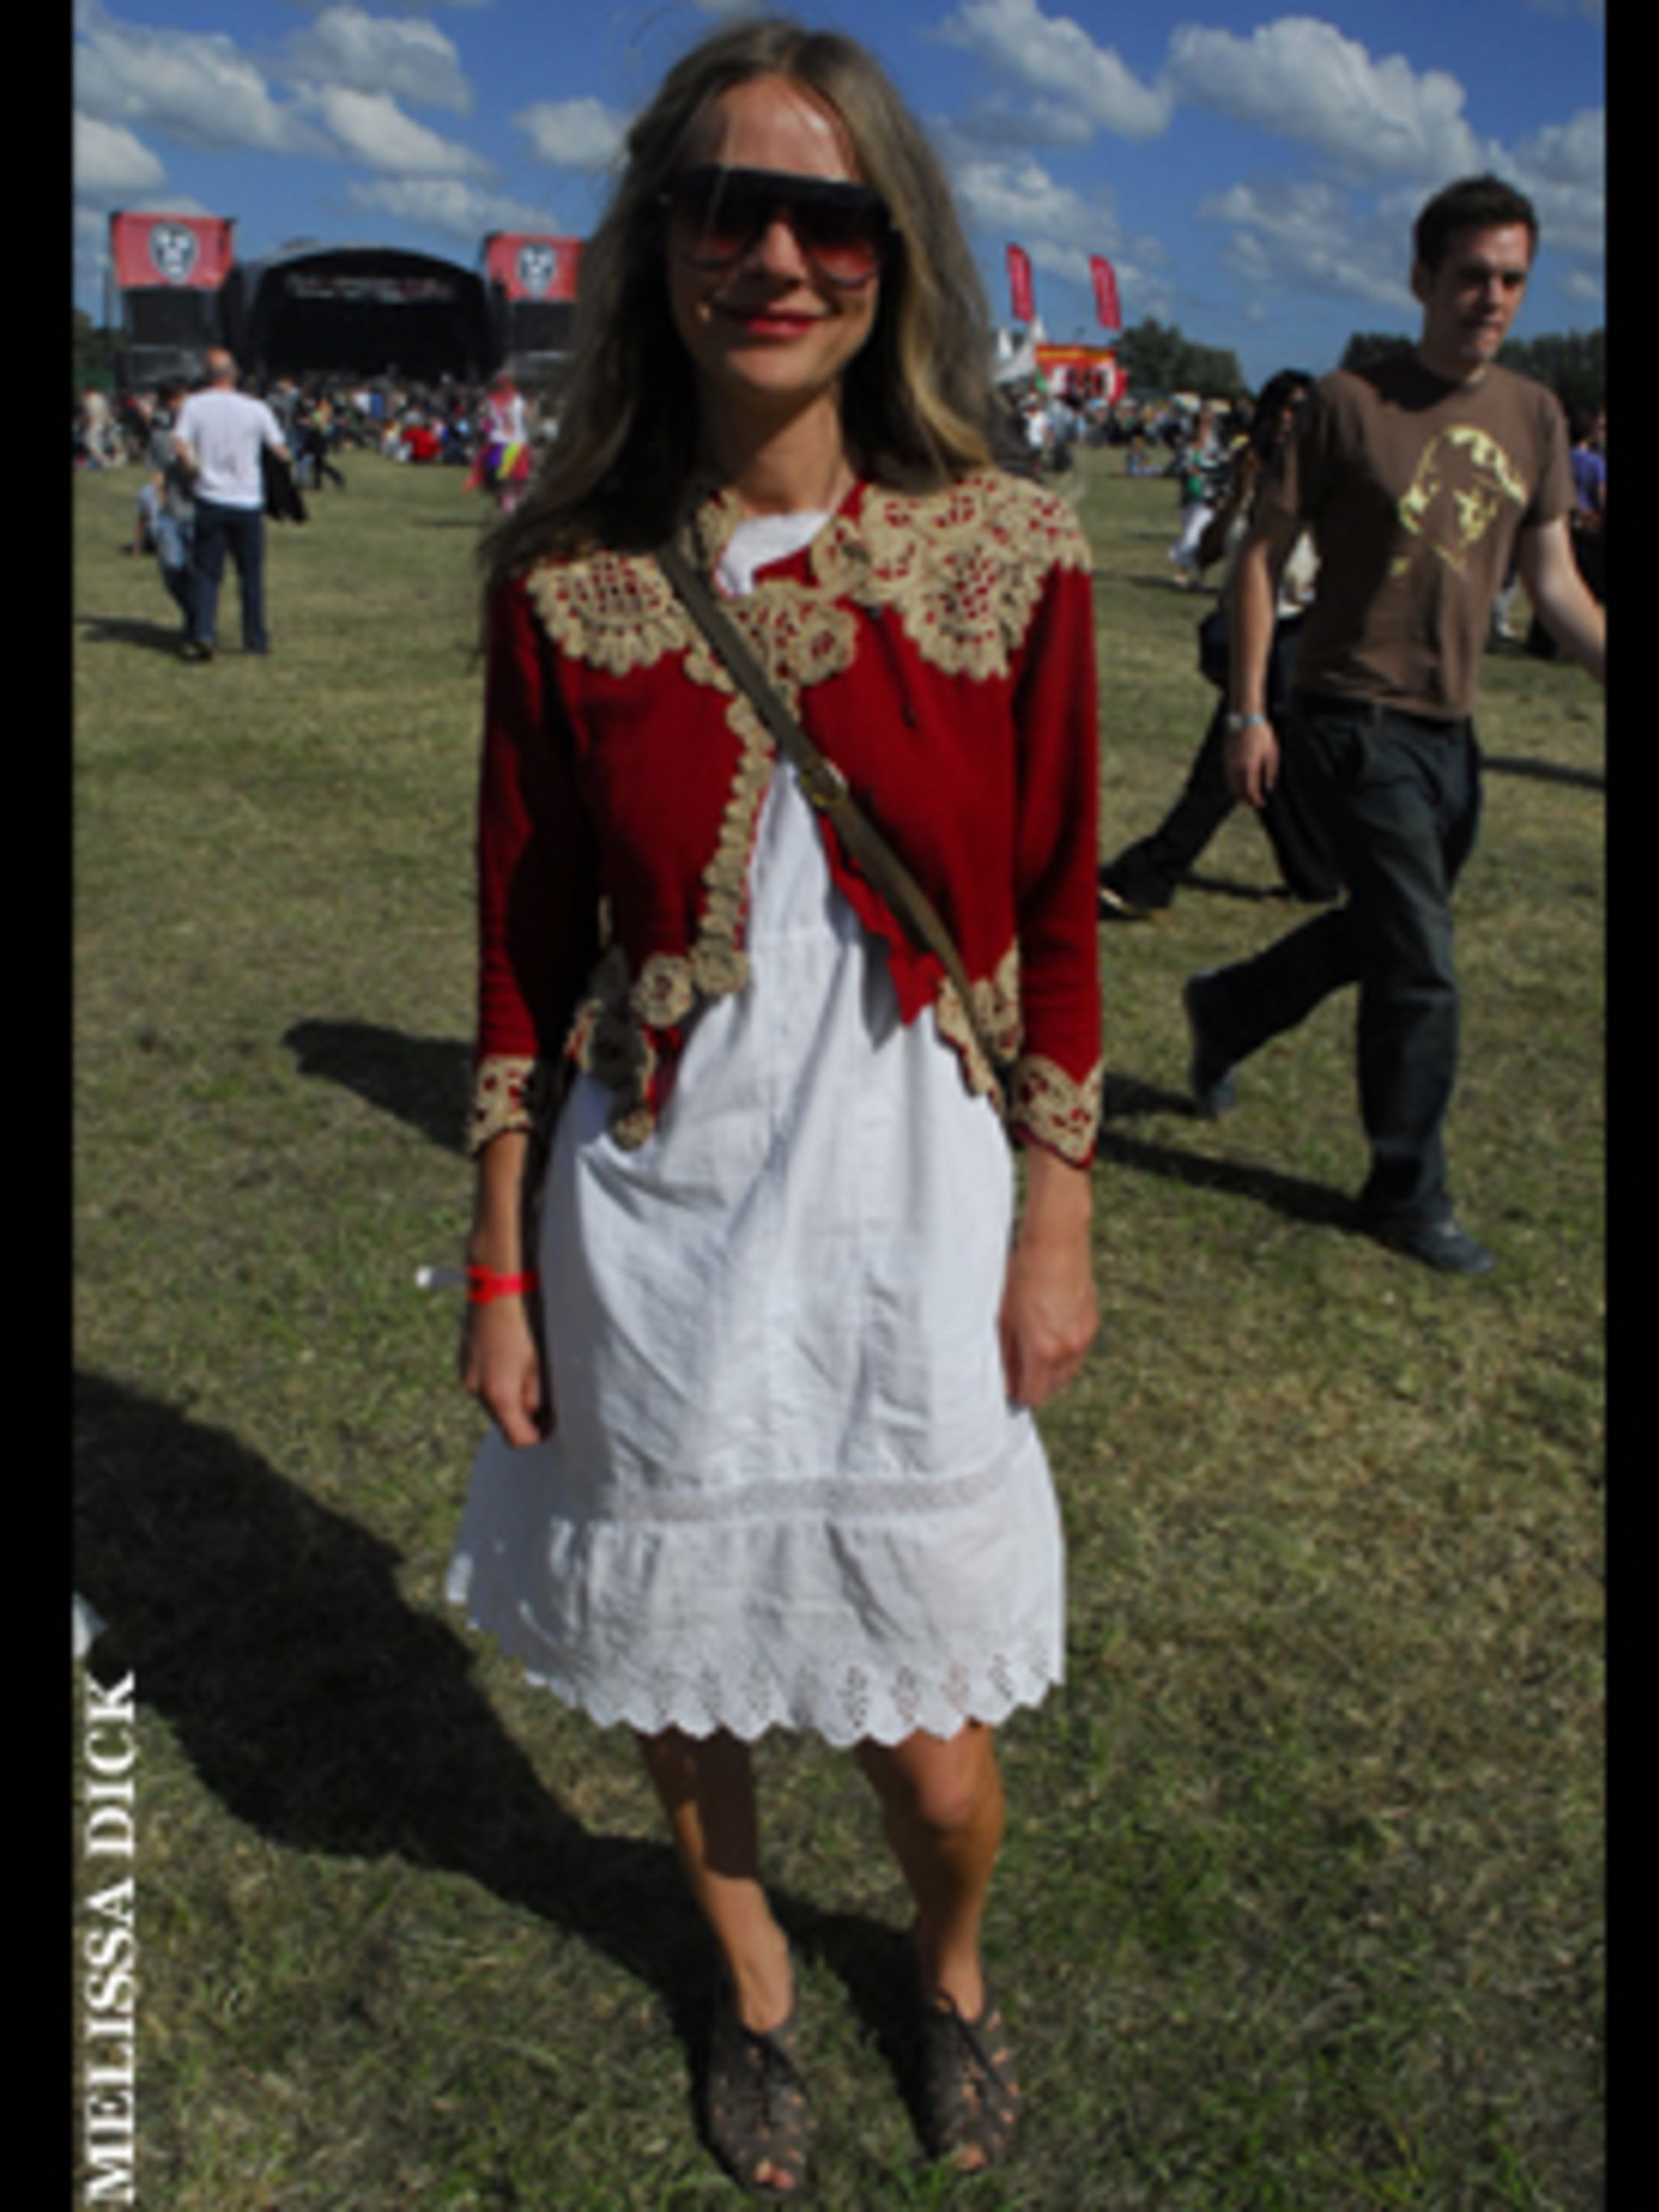 <p>This is the perfect festival look, teaming a pretty white frock with a cool vintage jacket - and if the rain starts to fall it will look just as stylish teamed with tights and wellies instead of sandals.</p>